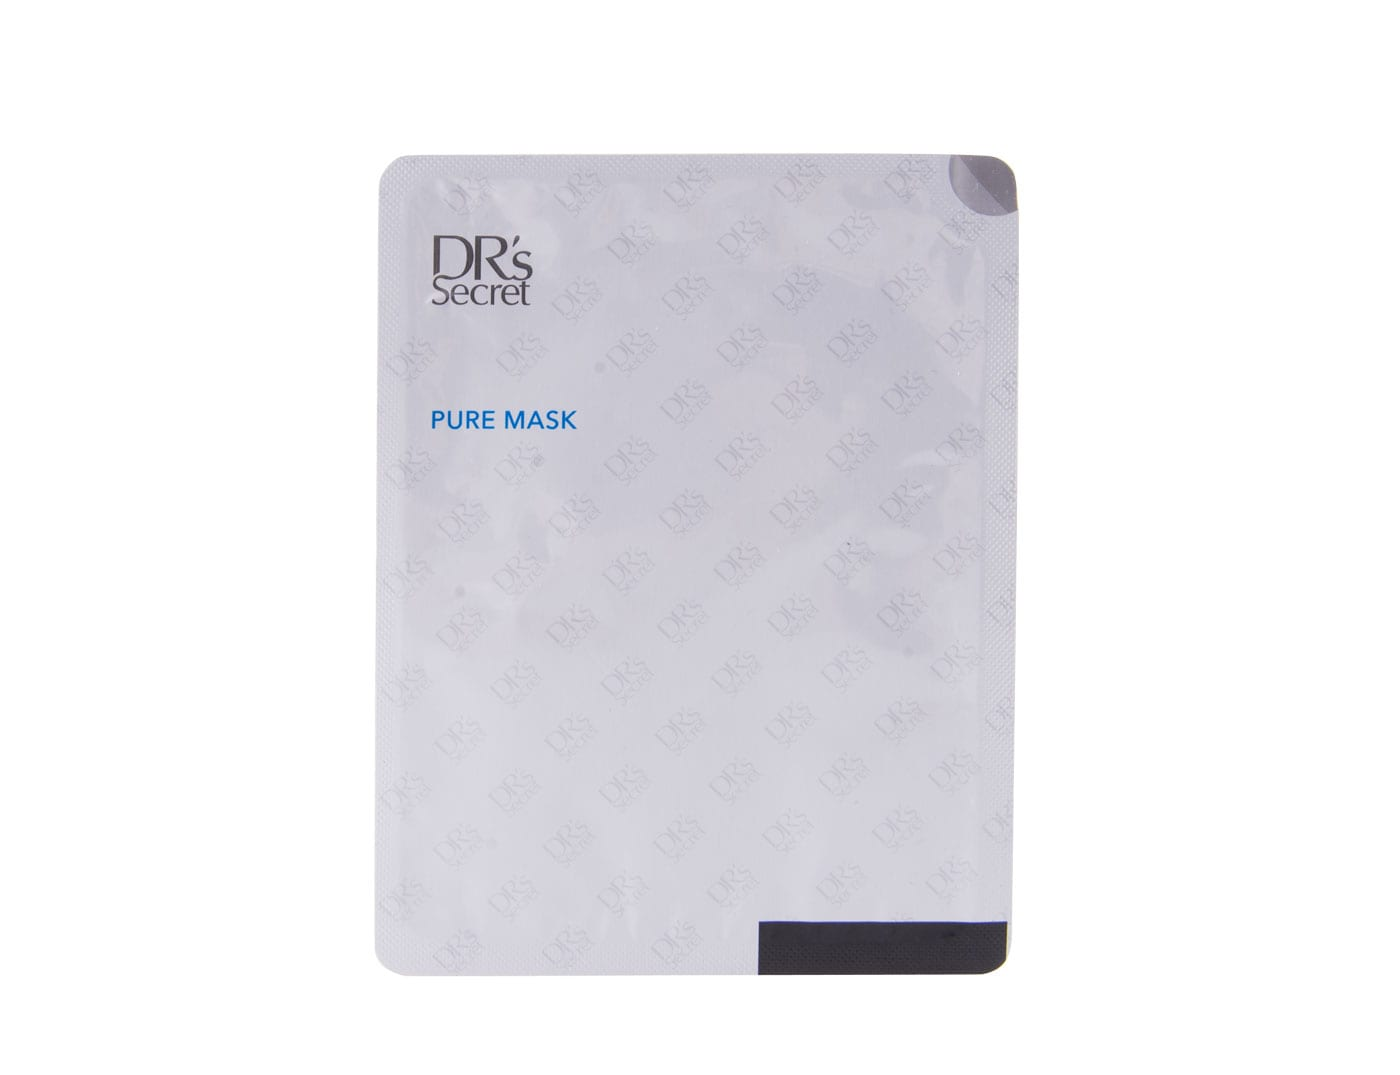 DR's Secret Pure Mask sachet